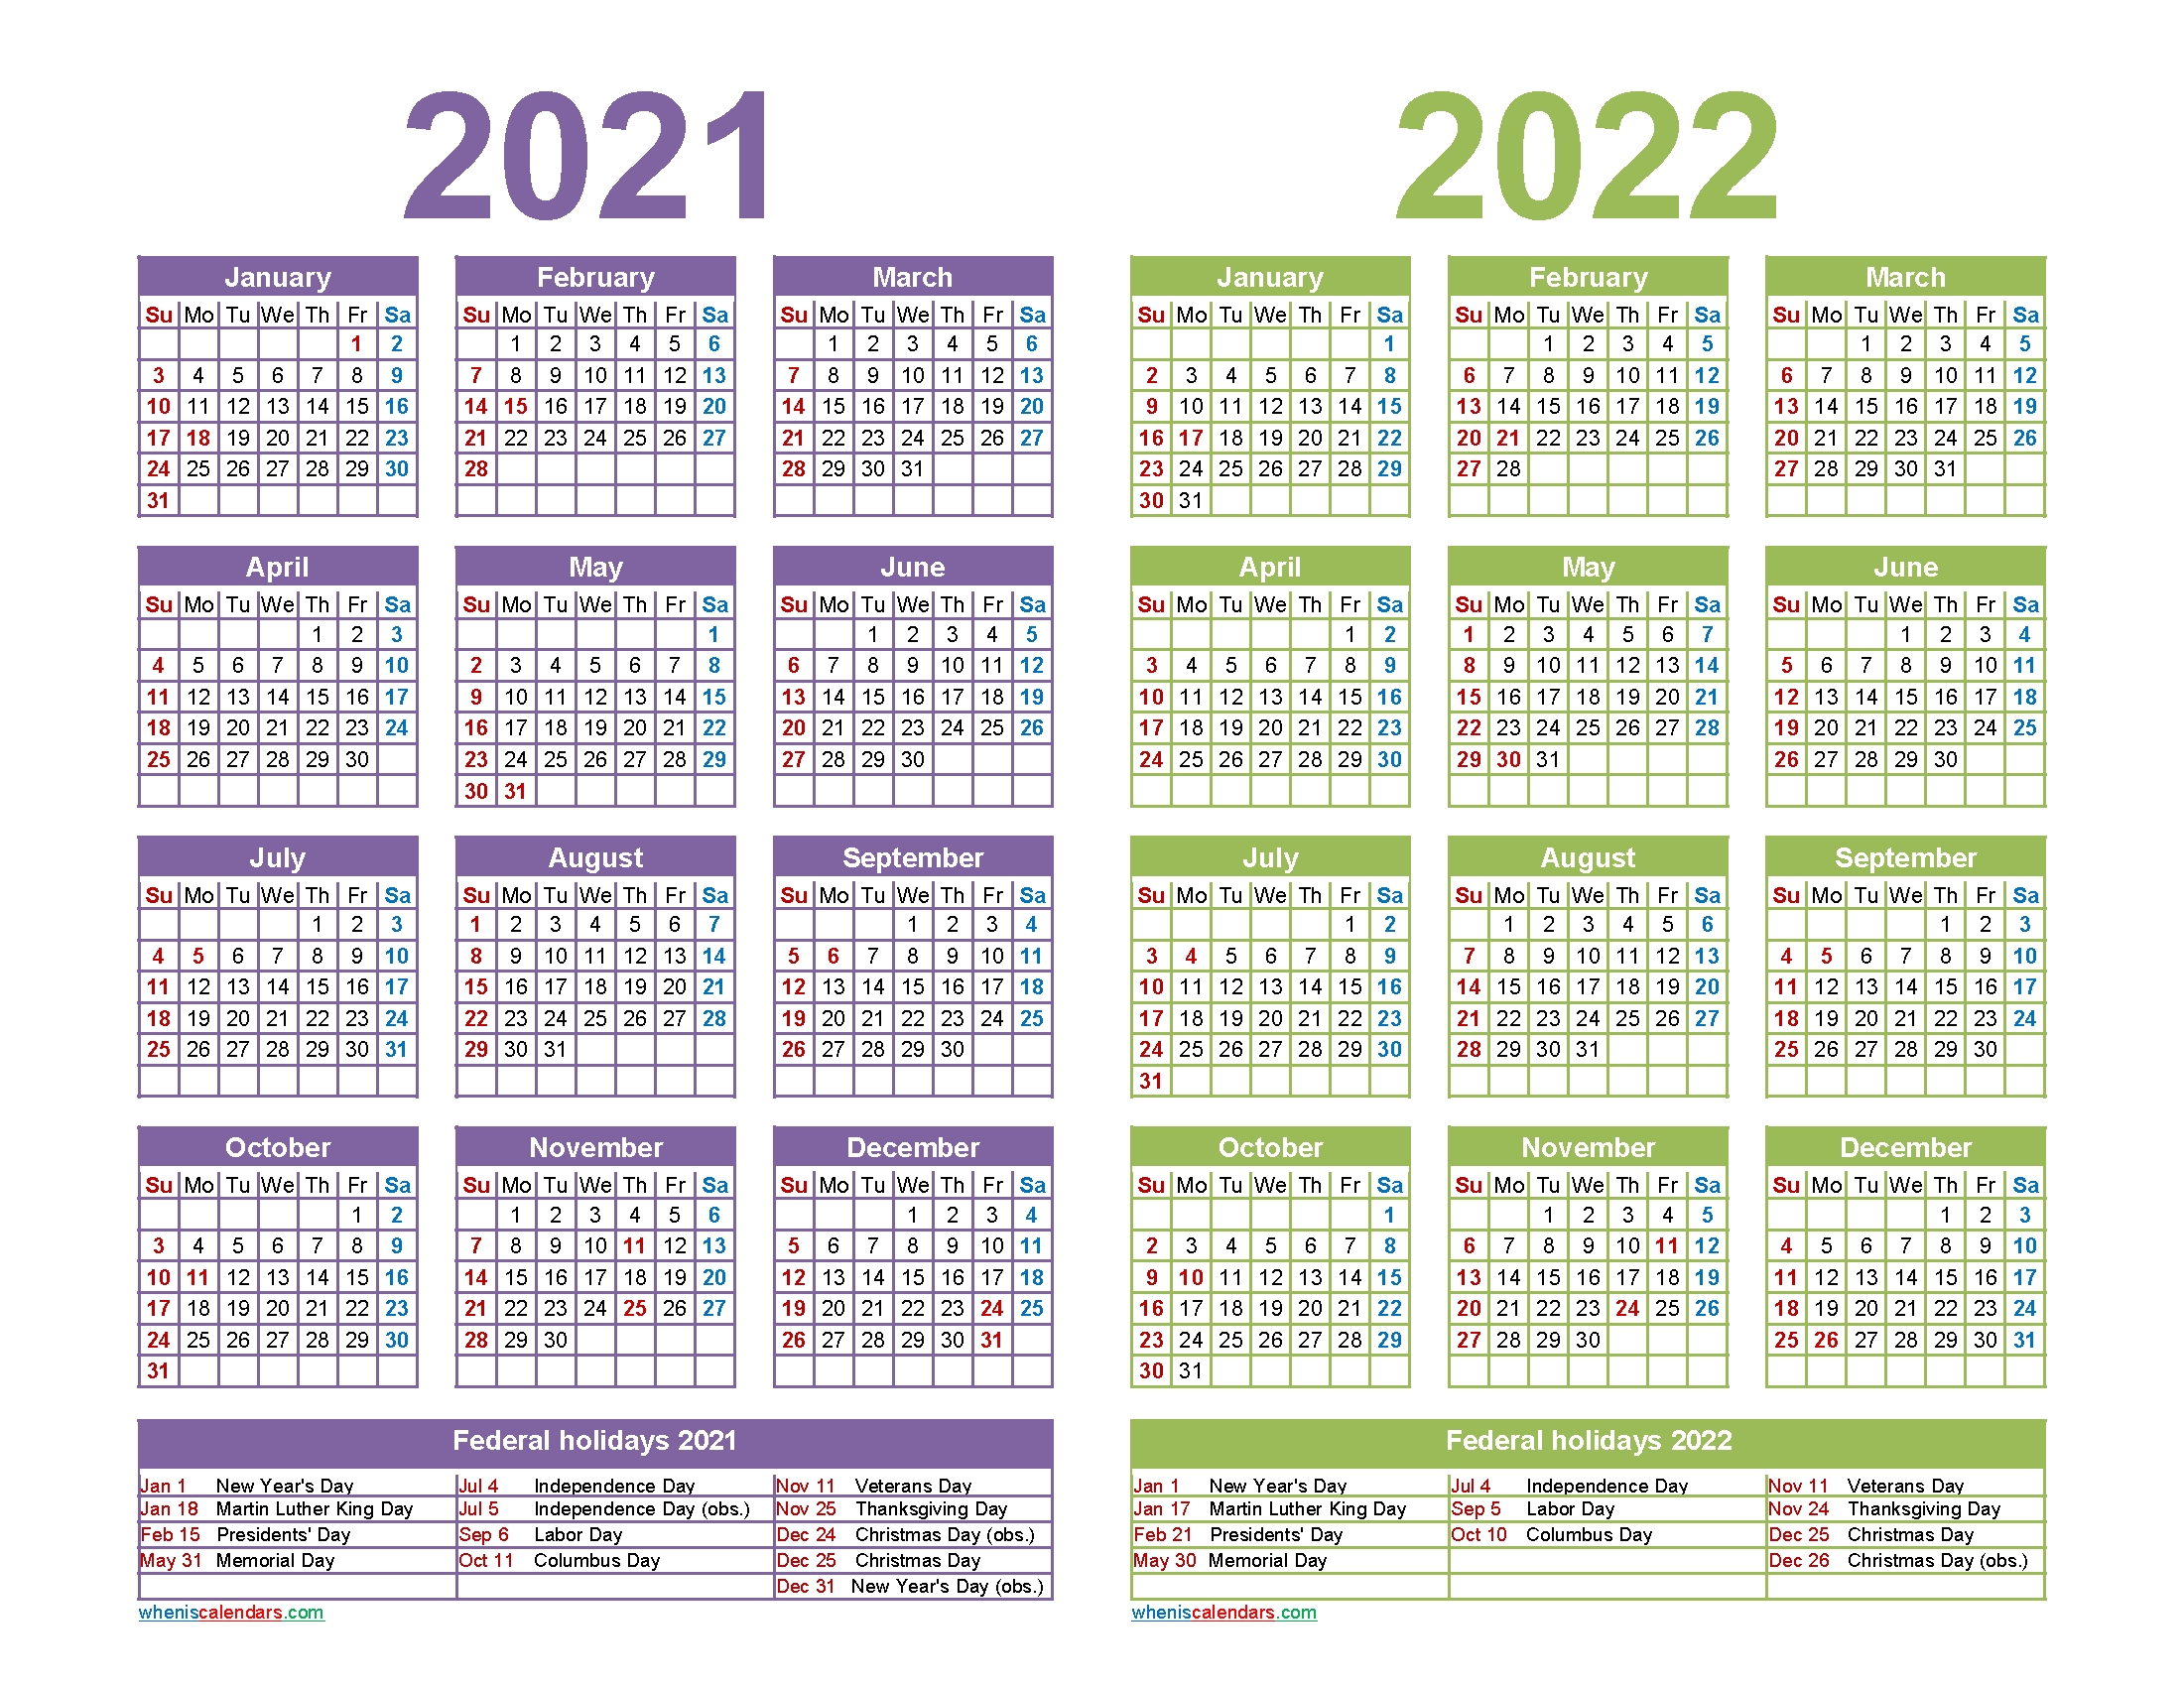 2021 2022 Calendar Printable With Holidays | Free Printable 2020 Calendar With Holidays pertaining to 2021 2022 Calendar Printable One Page